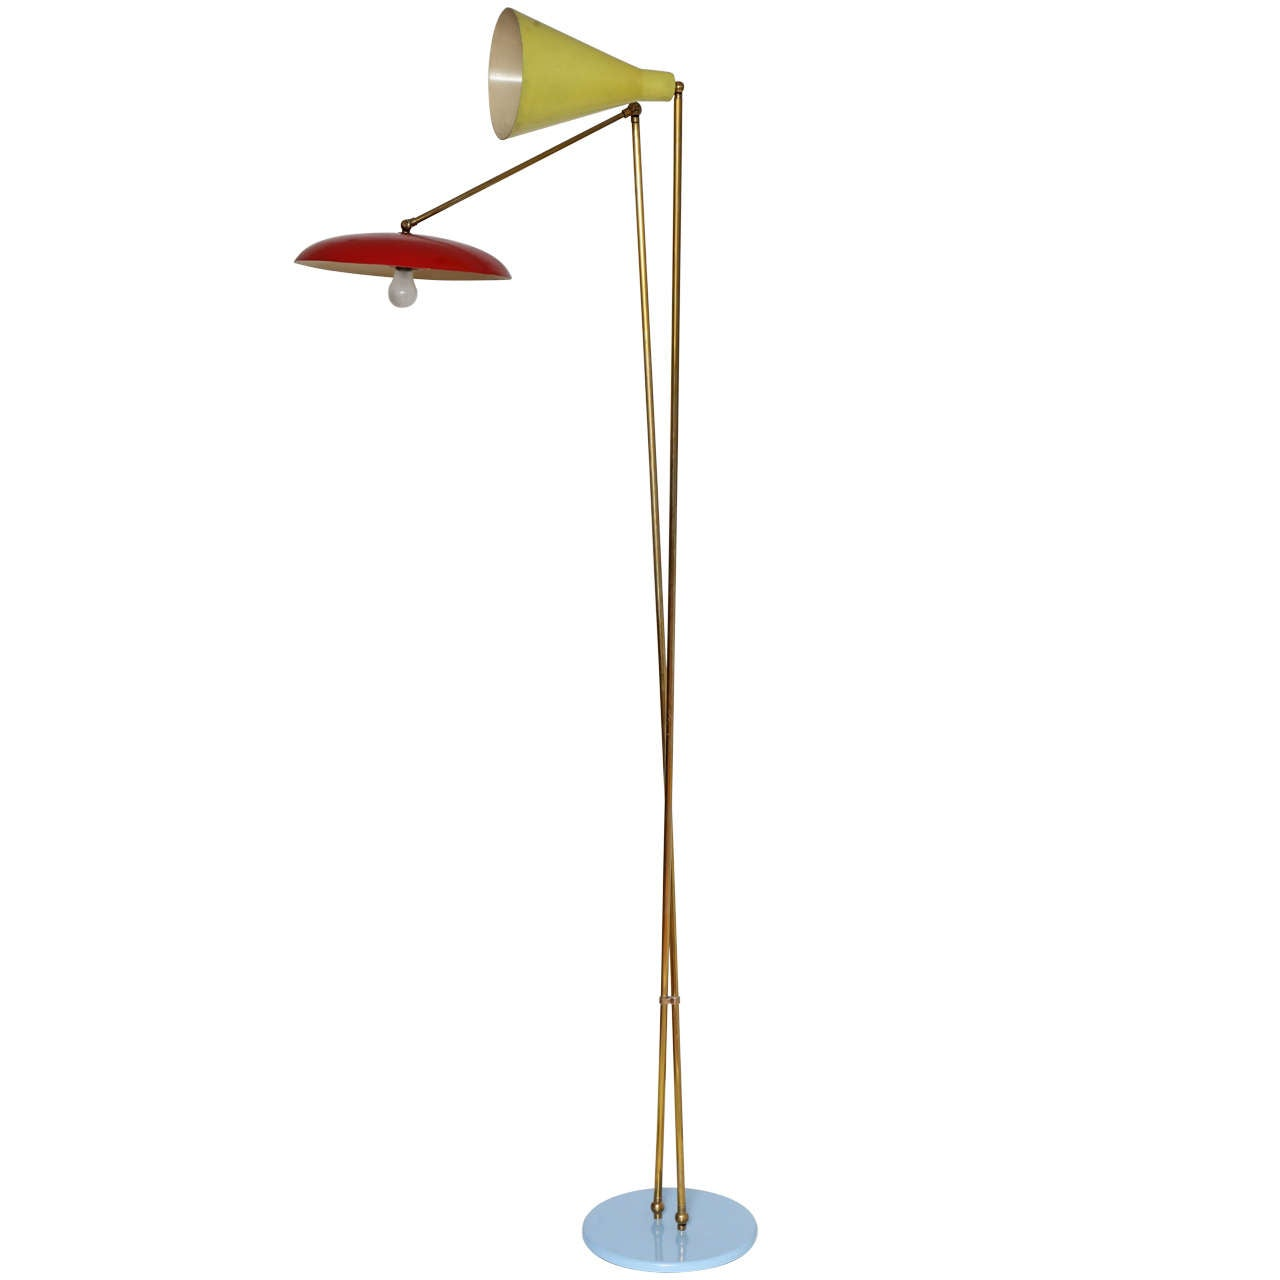 stilnovo italian midcentury modern floor lamp  for sale at  - stilnovo italian midcentury modern floor lamp